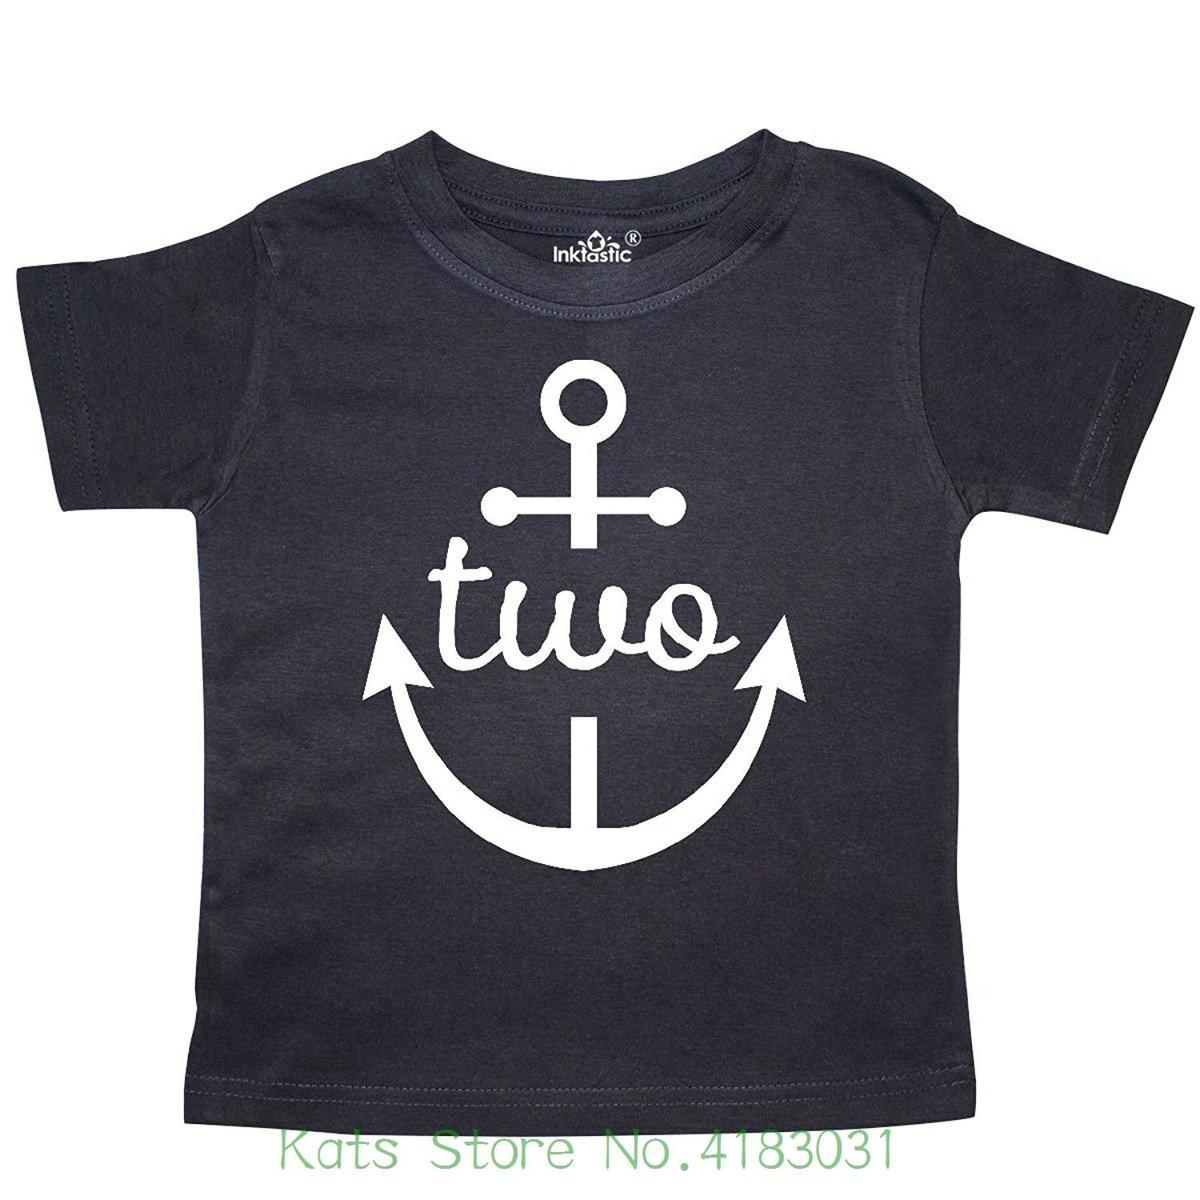 2nd Birthday Outfit Anchor Toddler T Shirt Summer Short Sleeve Shirts Tops S3xl Big Size Cotton Tees Tee Funny Sites From Liguo0021